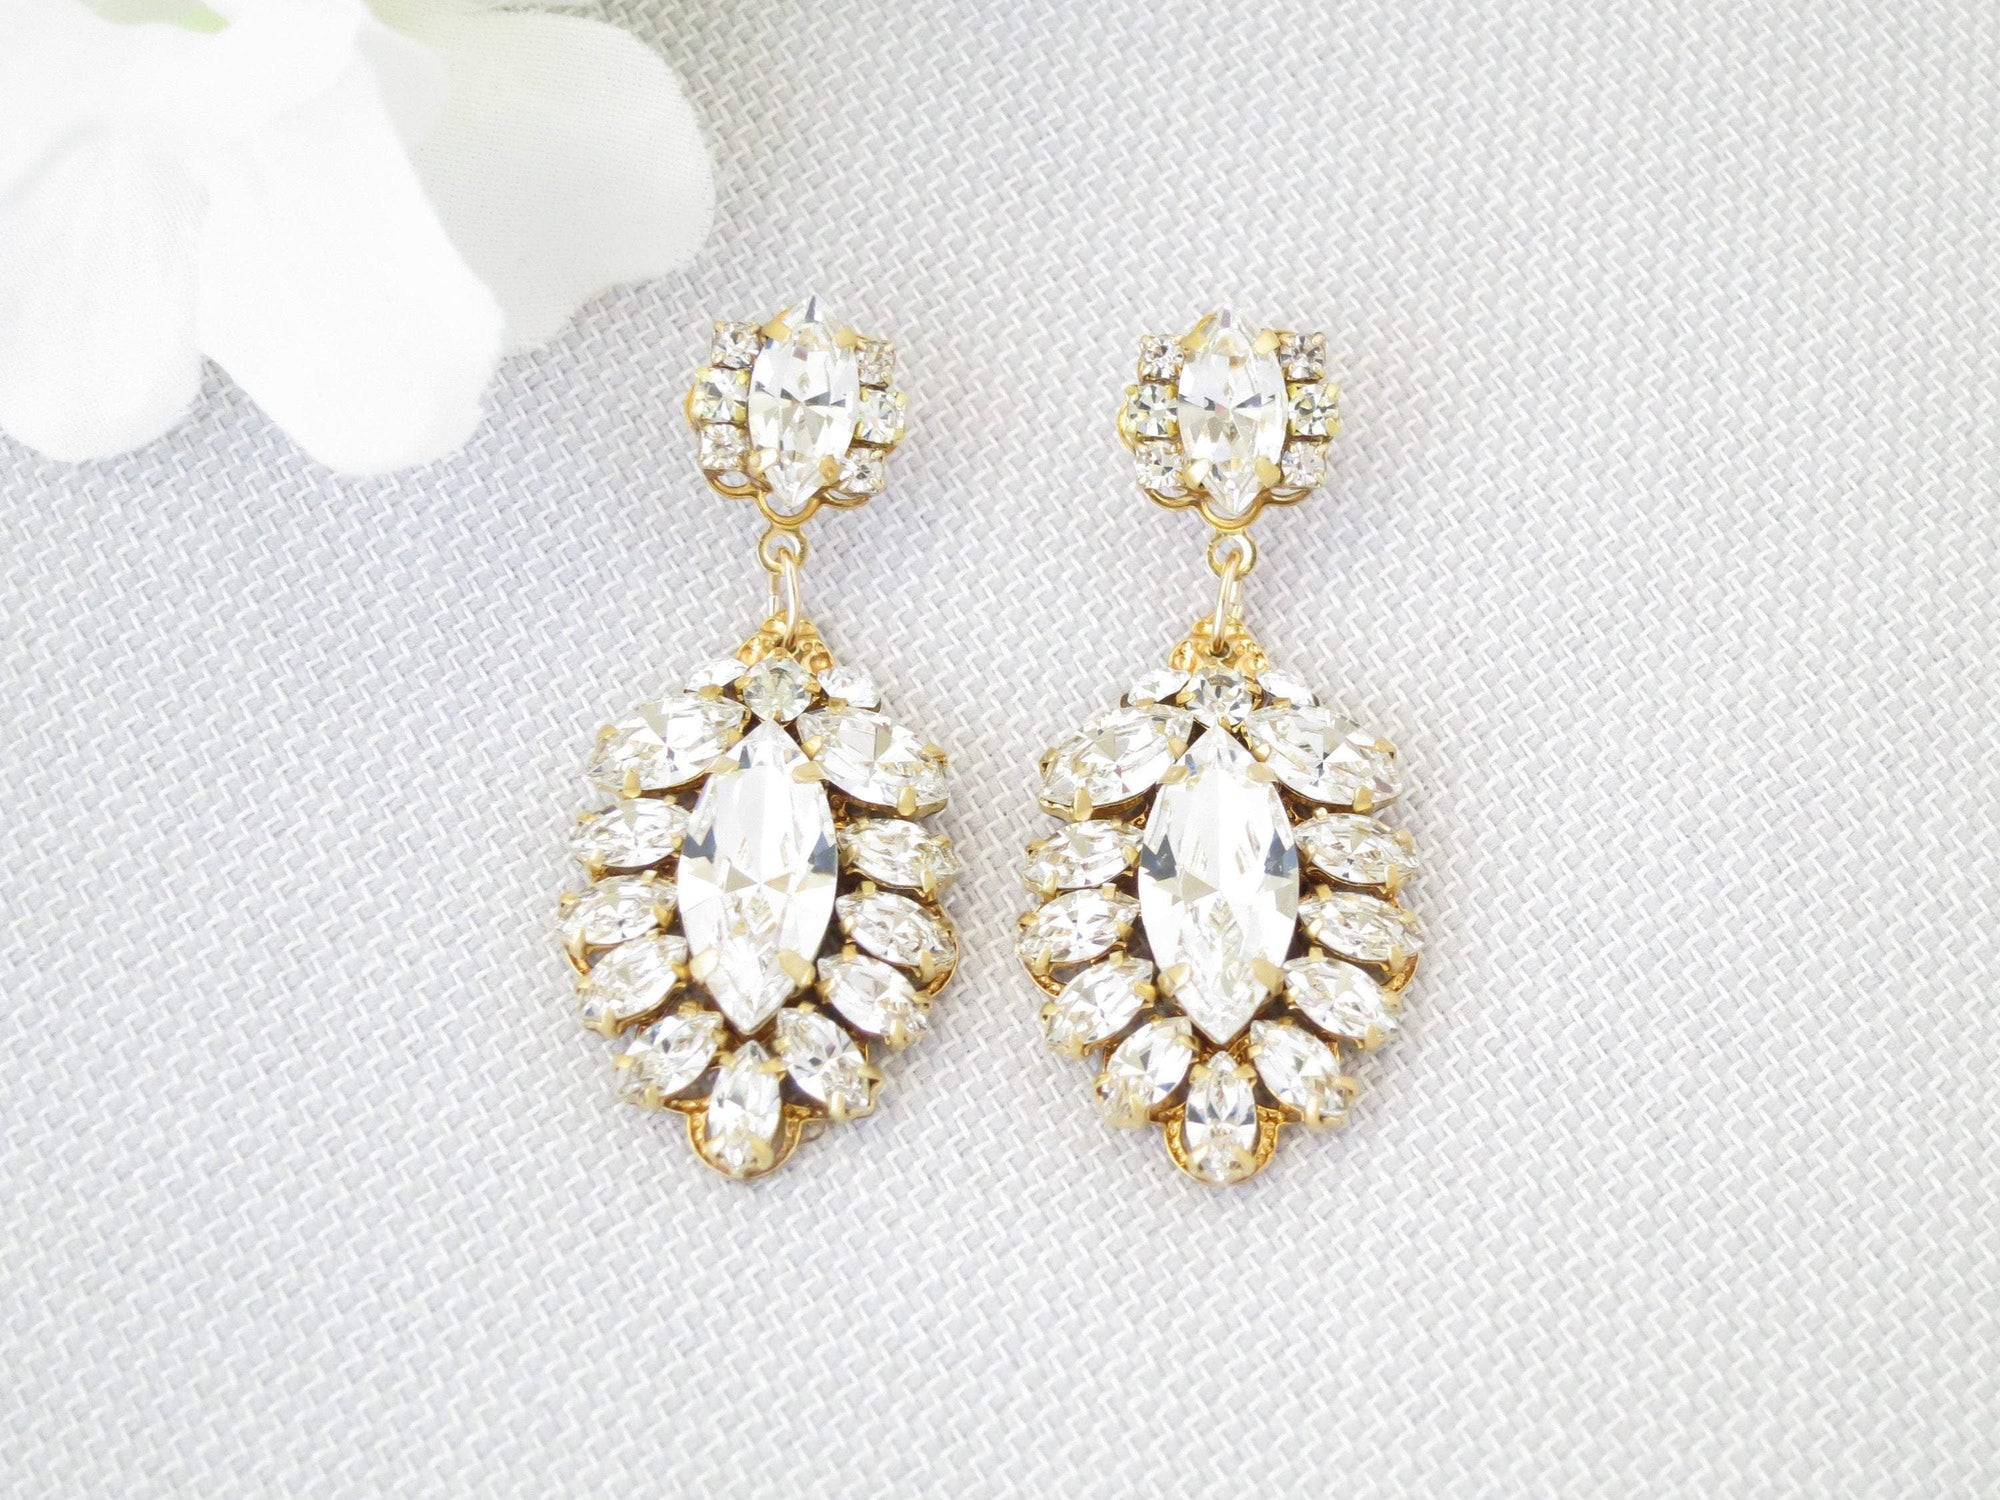 KIM:  Cascading Marquise Drop Earrings - BlingBaddaBoom - Minimalist, Vintage, Modern Wedding and Bridal Jewelry